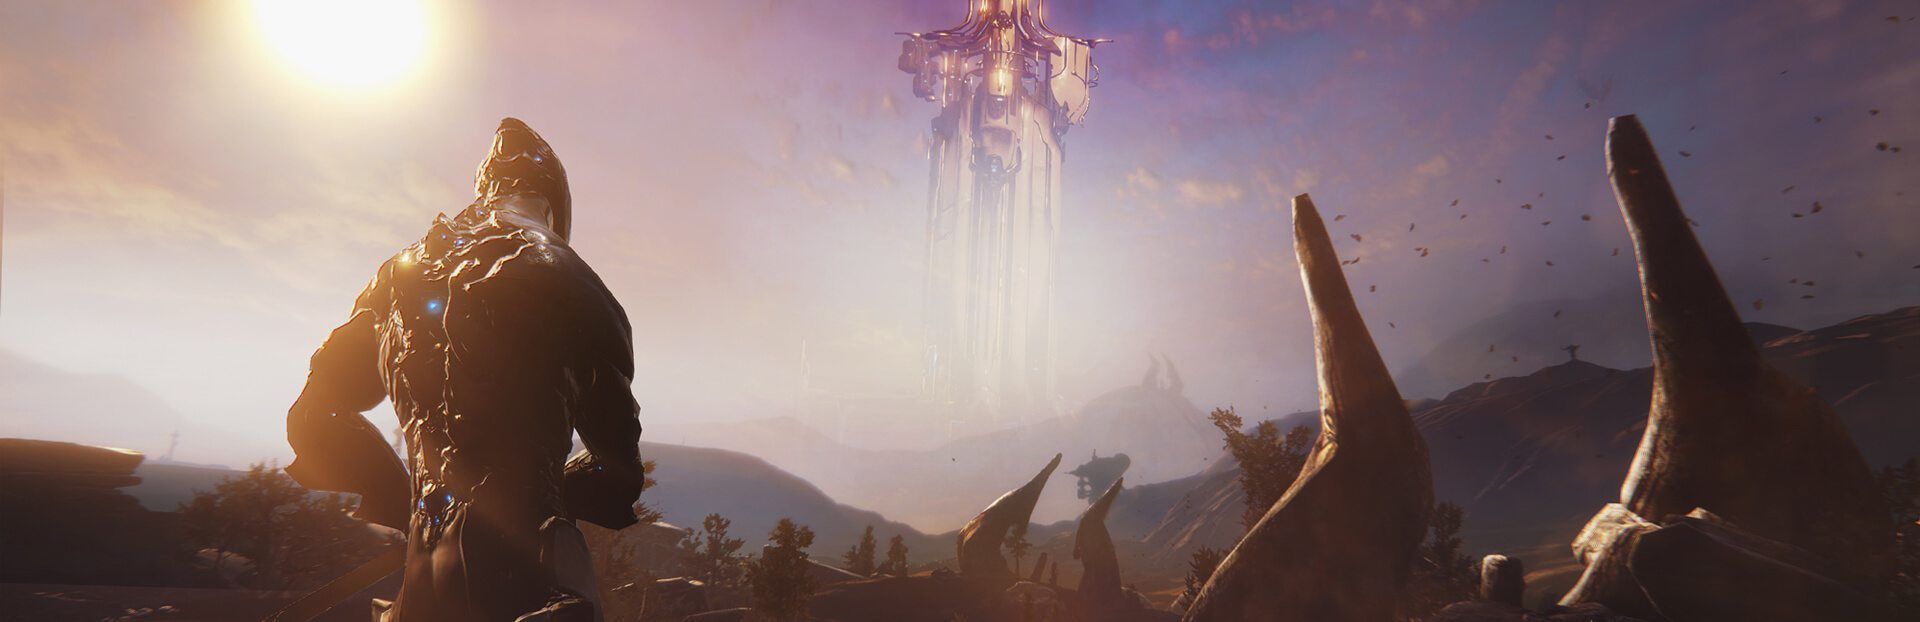 Warframe Open world Plains of Eidolon Excalibur